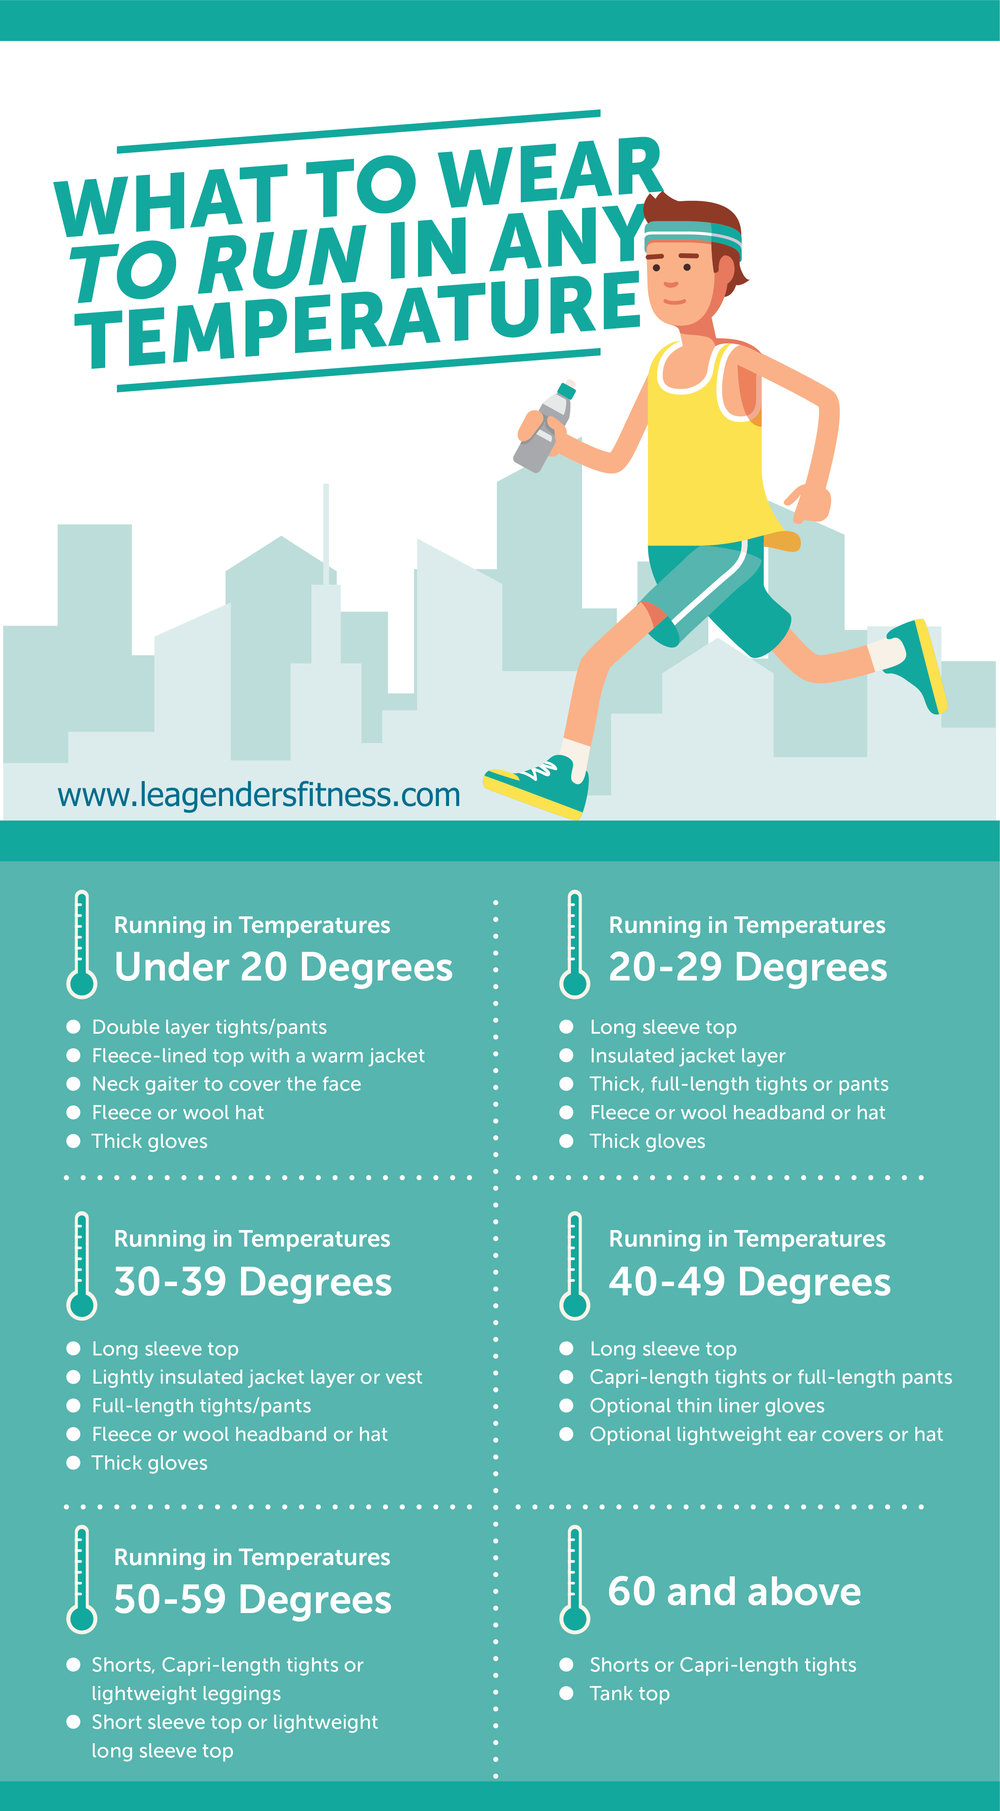 What to wear to run in any temperature. Save to your favorite Pinterest board for later!